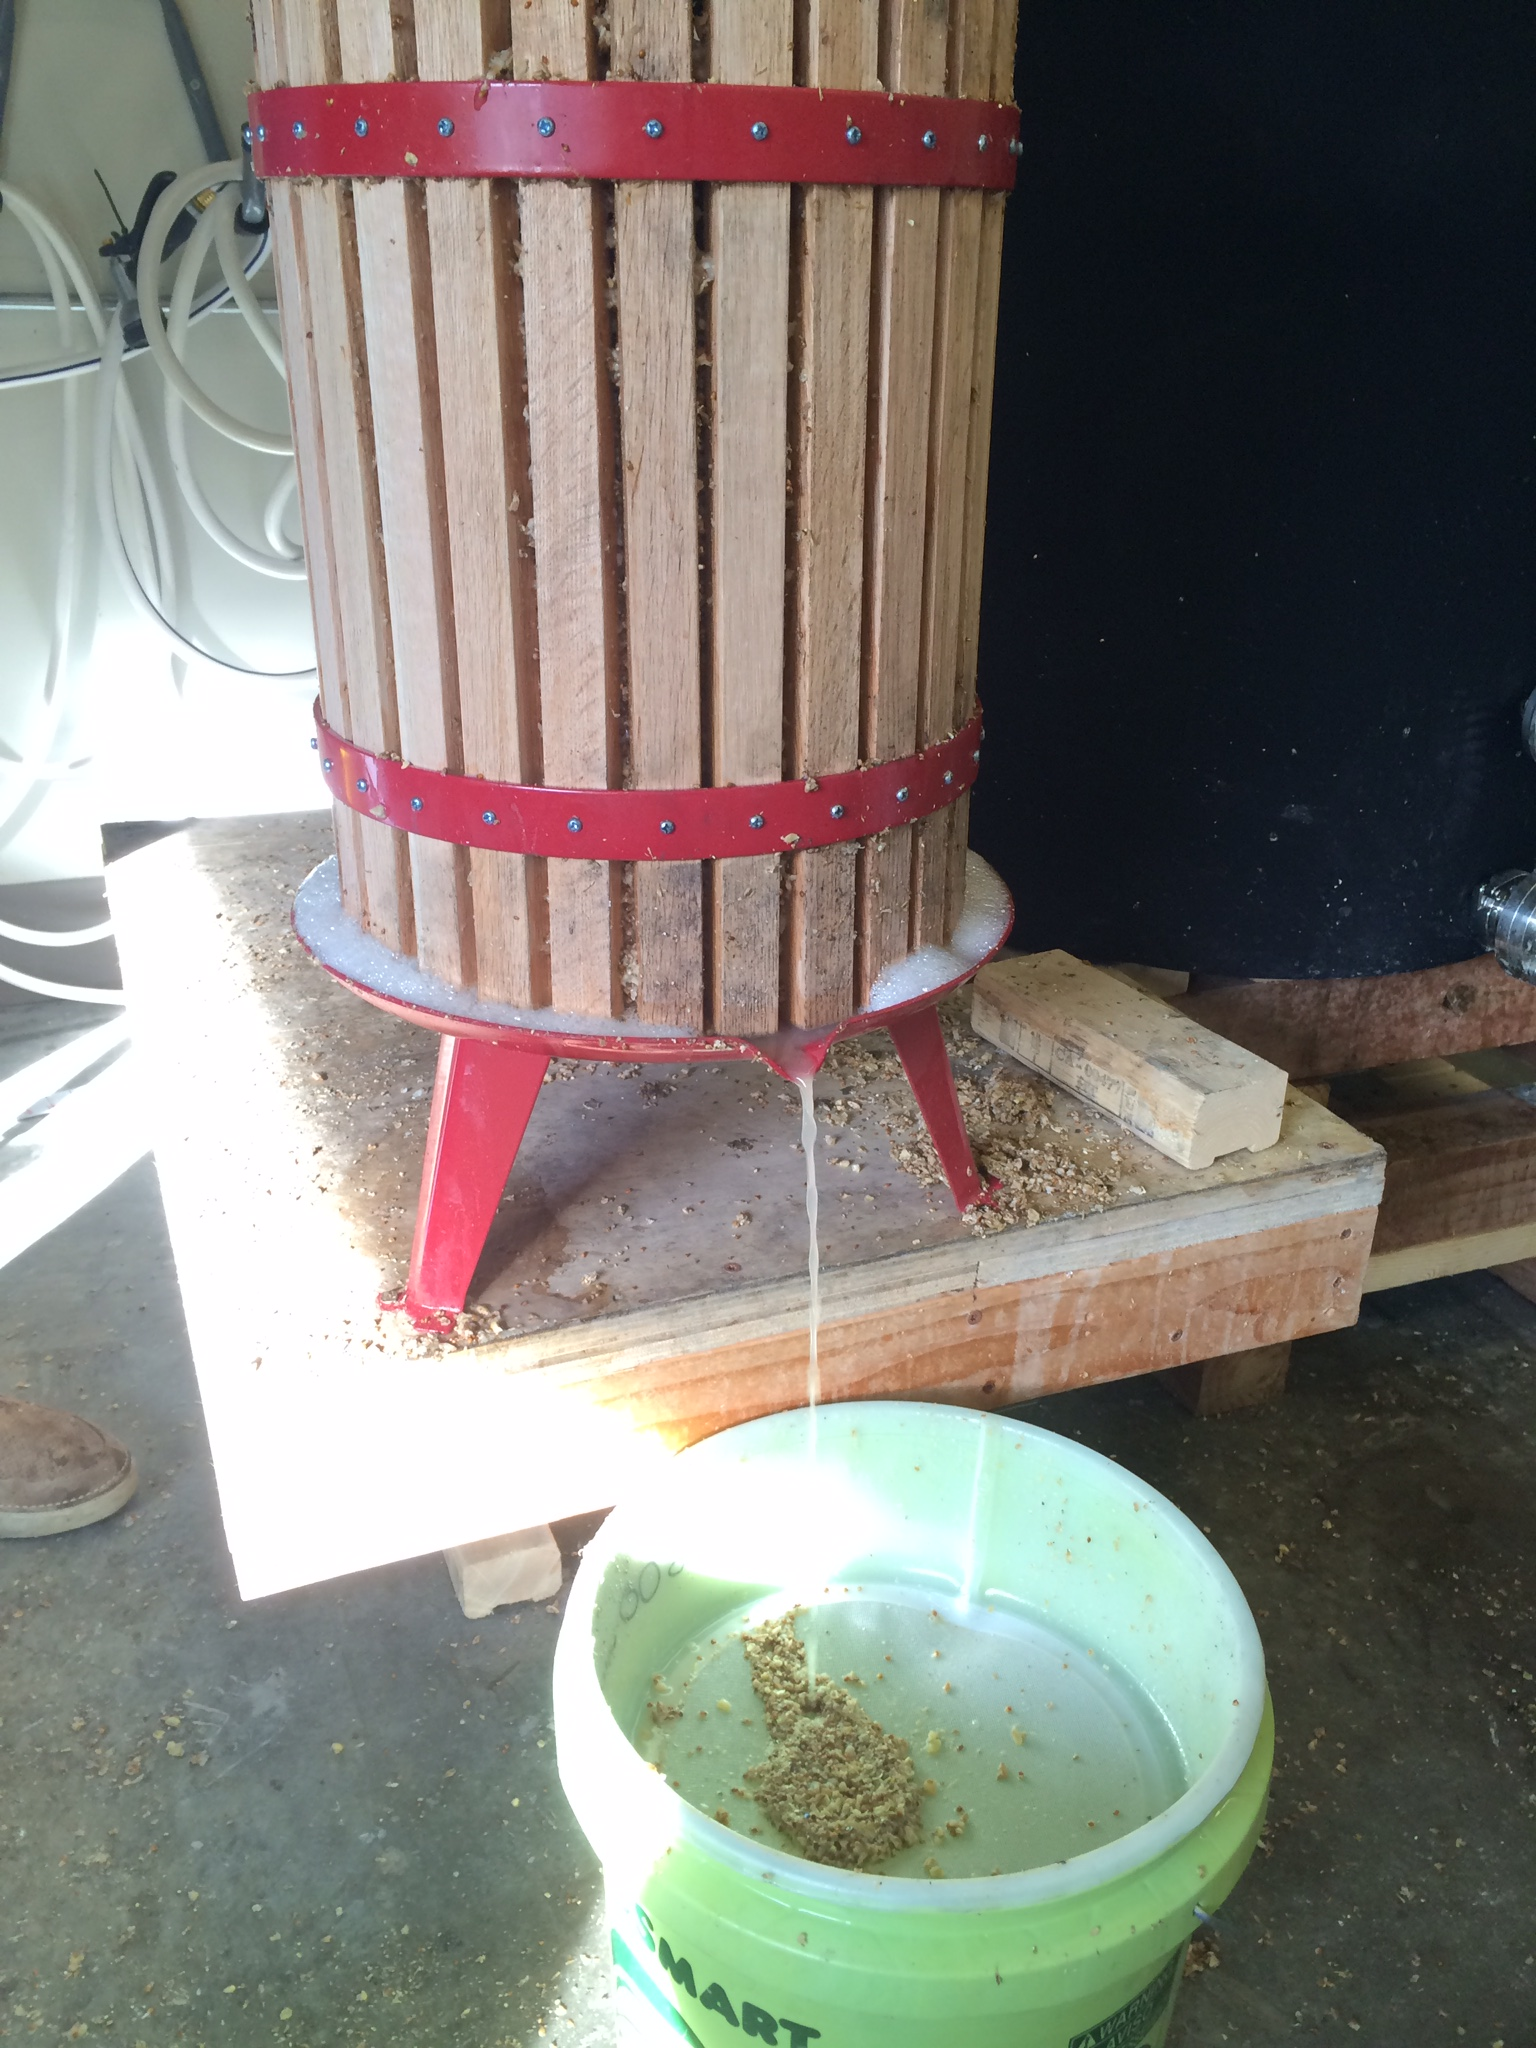 Pressing the mashed grains